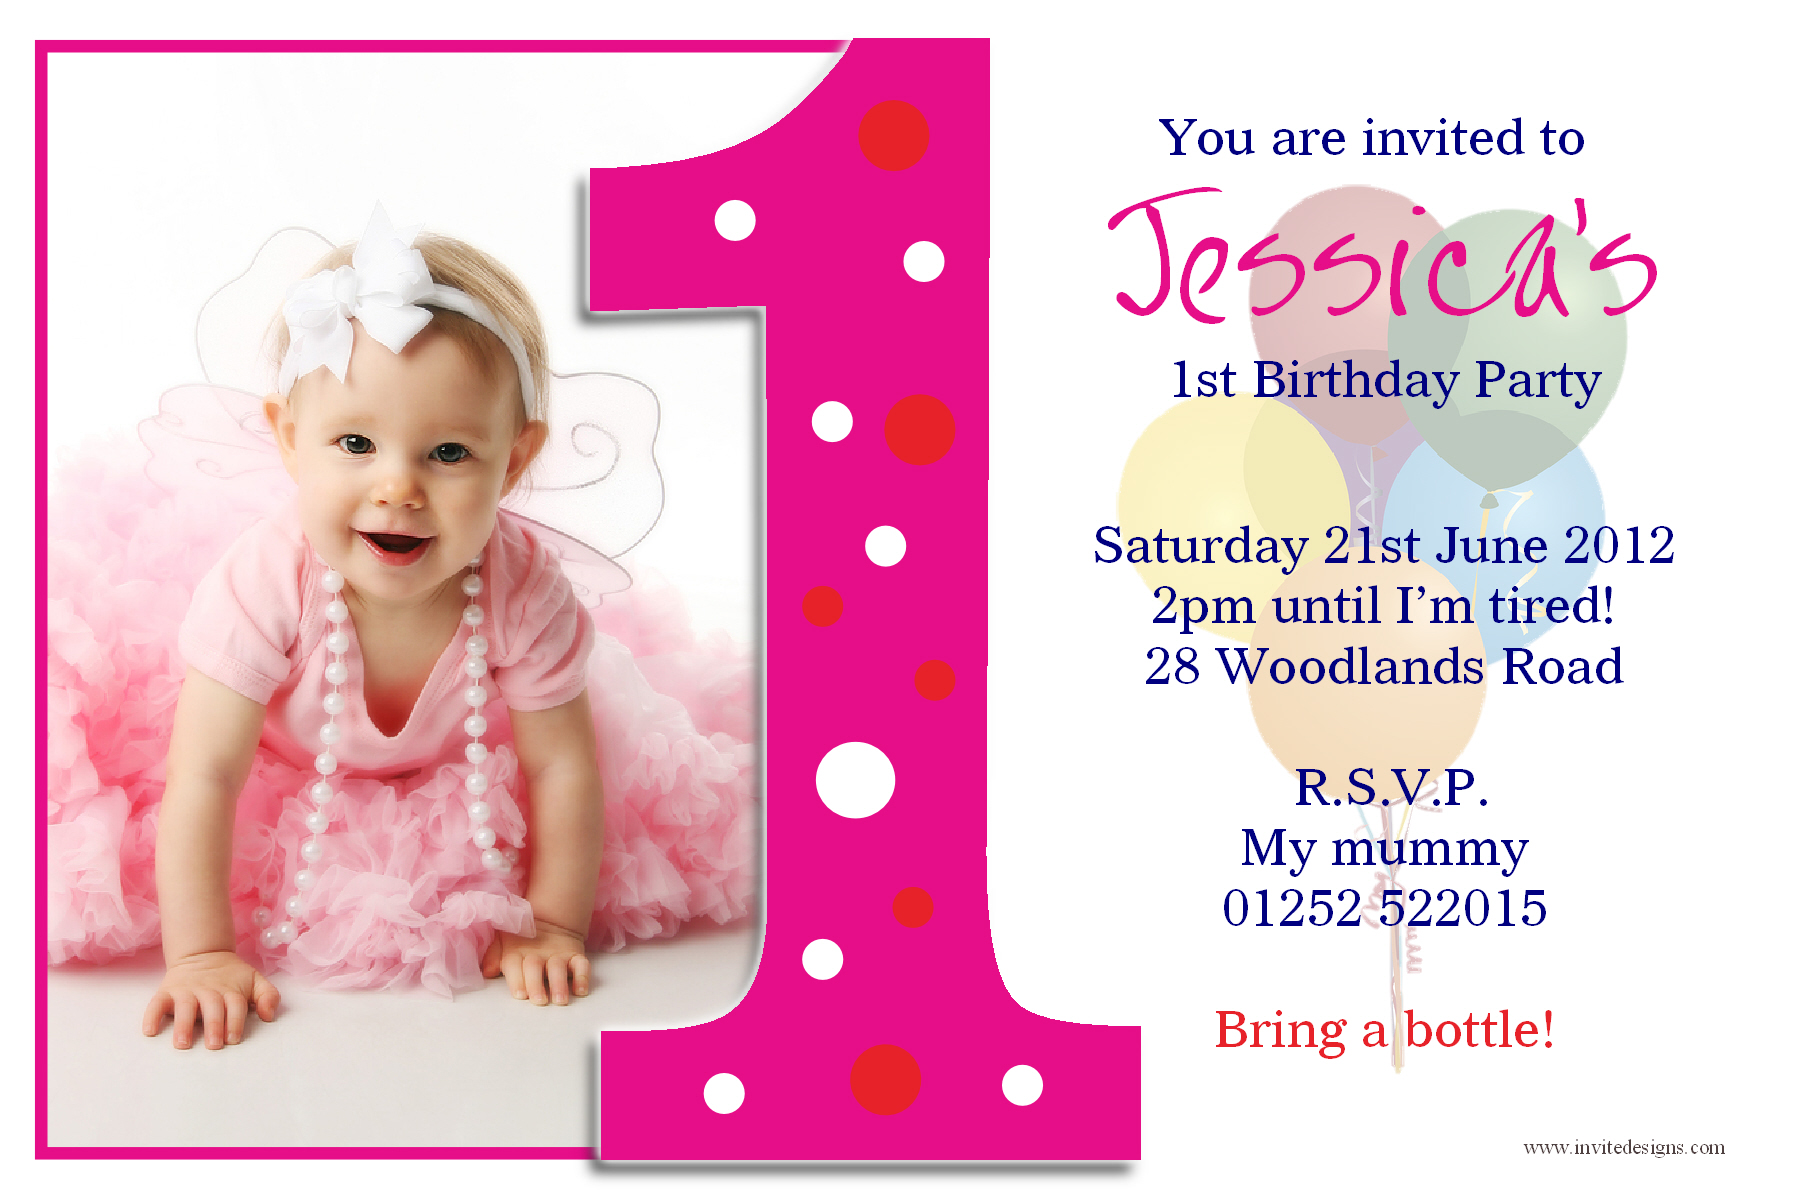 baby birthday invitation card template ; 1St-Birthday-Invitations-for-a-fetching-Birthday-invitation-design-with-fetching-layout-1